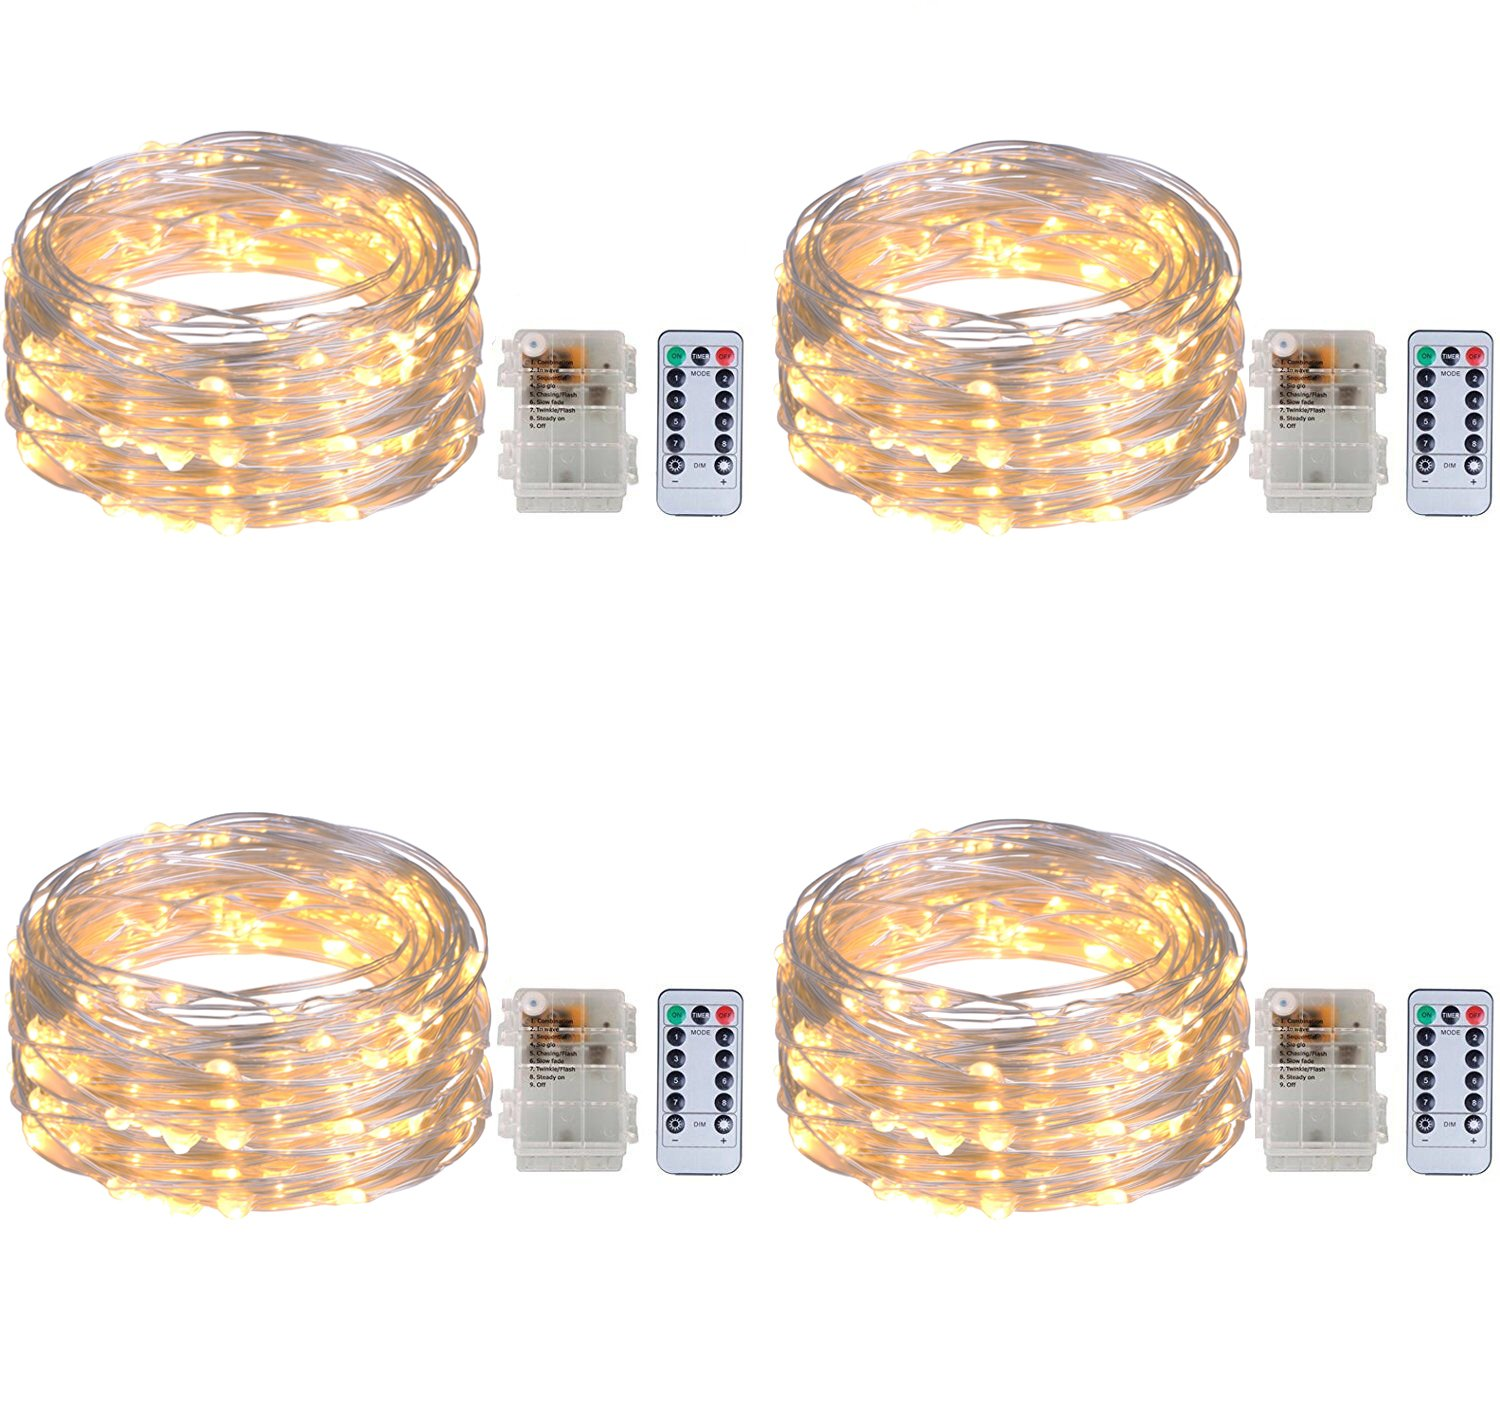 4 Pack Twinkle Fairy String Lights 50 LED 16.4FT Battery Operated Waterproof Firefly Starry Lights with 8 Modes Remote Control and Timer for Wedding Party Garden Bedroom Christmas Decor, Warm White